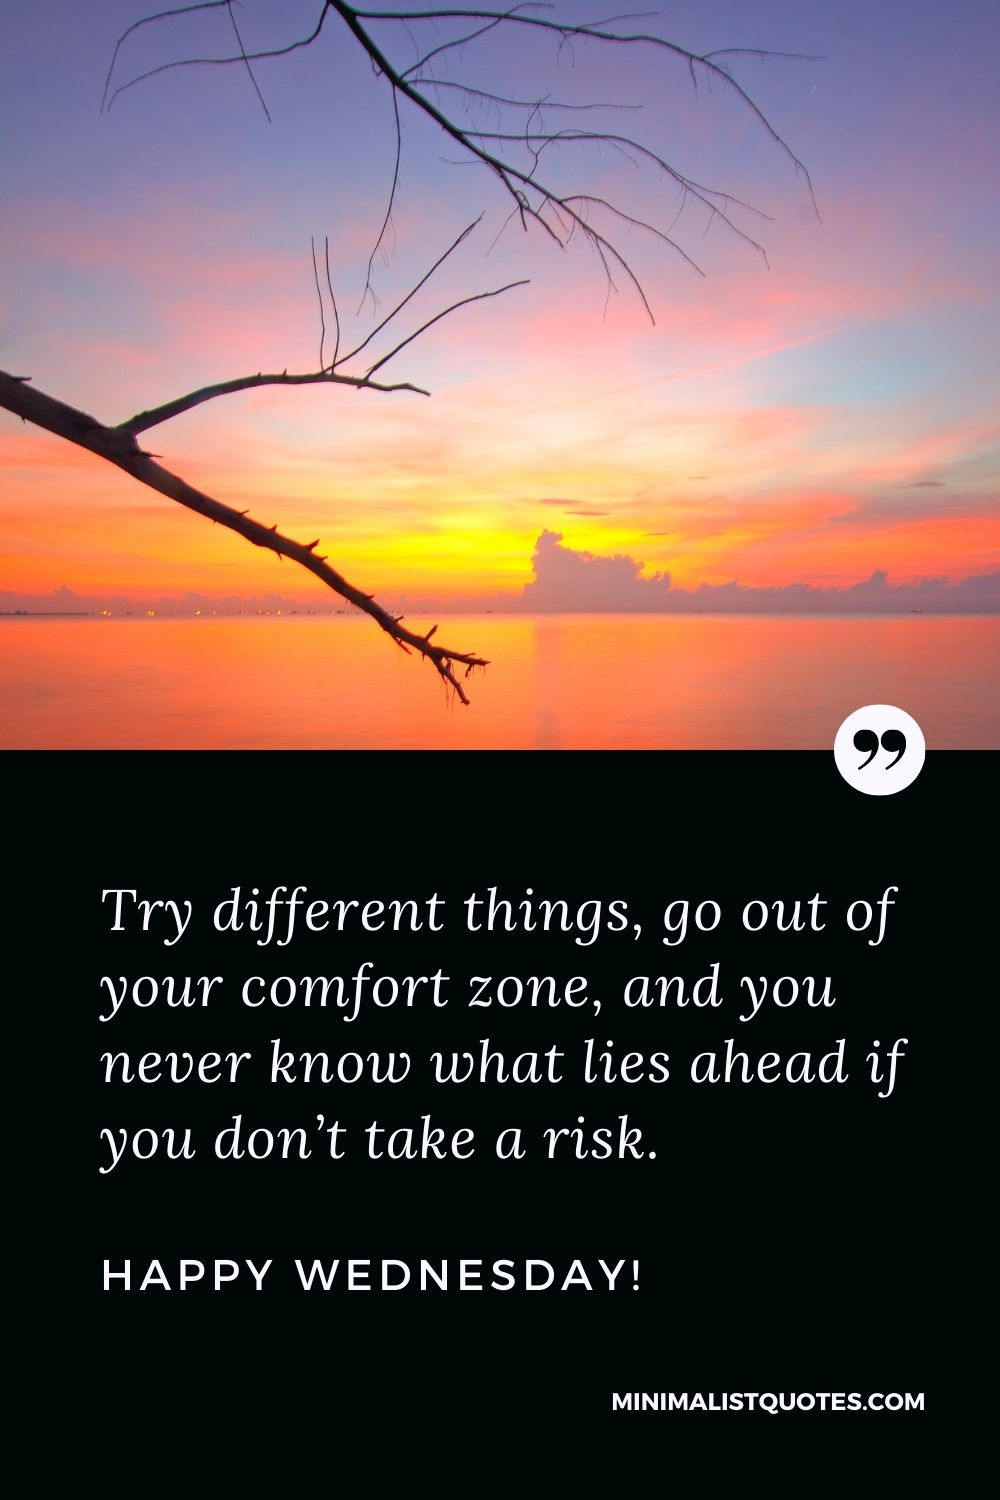 Wednesday Quote, Wish & Message With Image: Try different things, go out of your comfort zone, and you never know what lies ahead if you don't take a risk. Happy Wednesday!